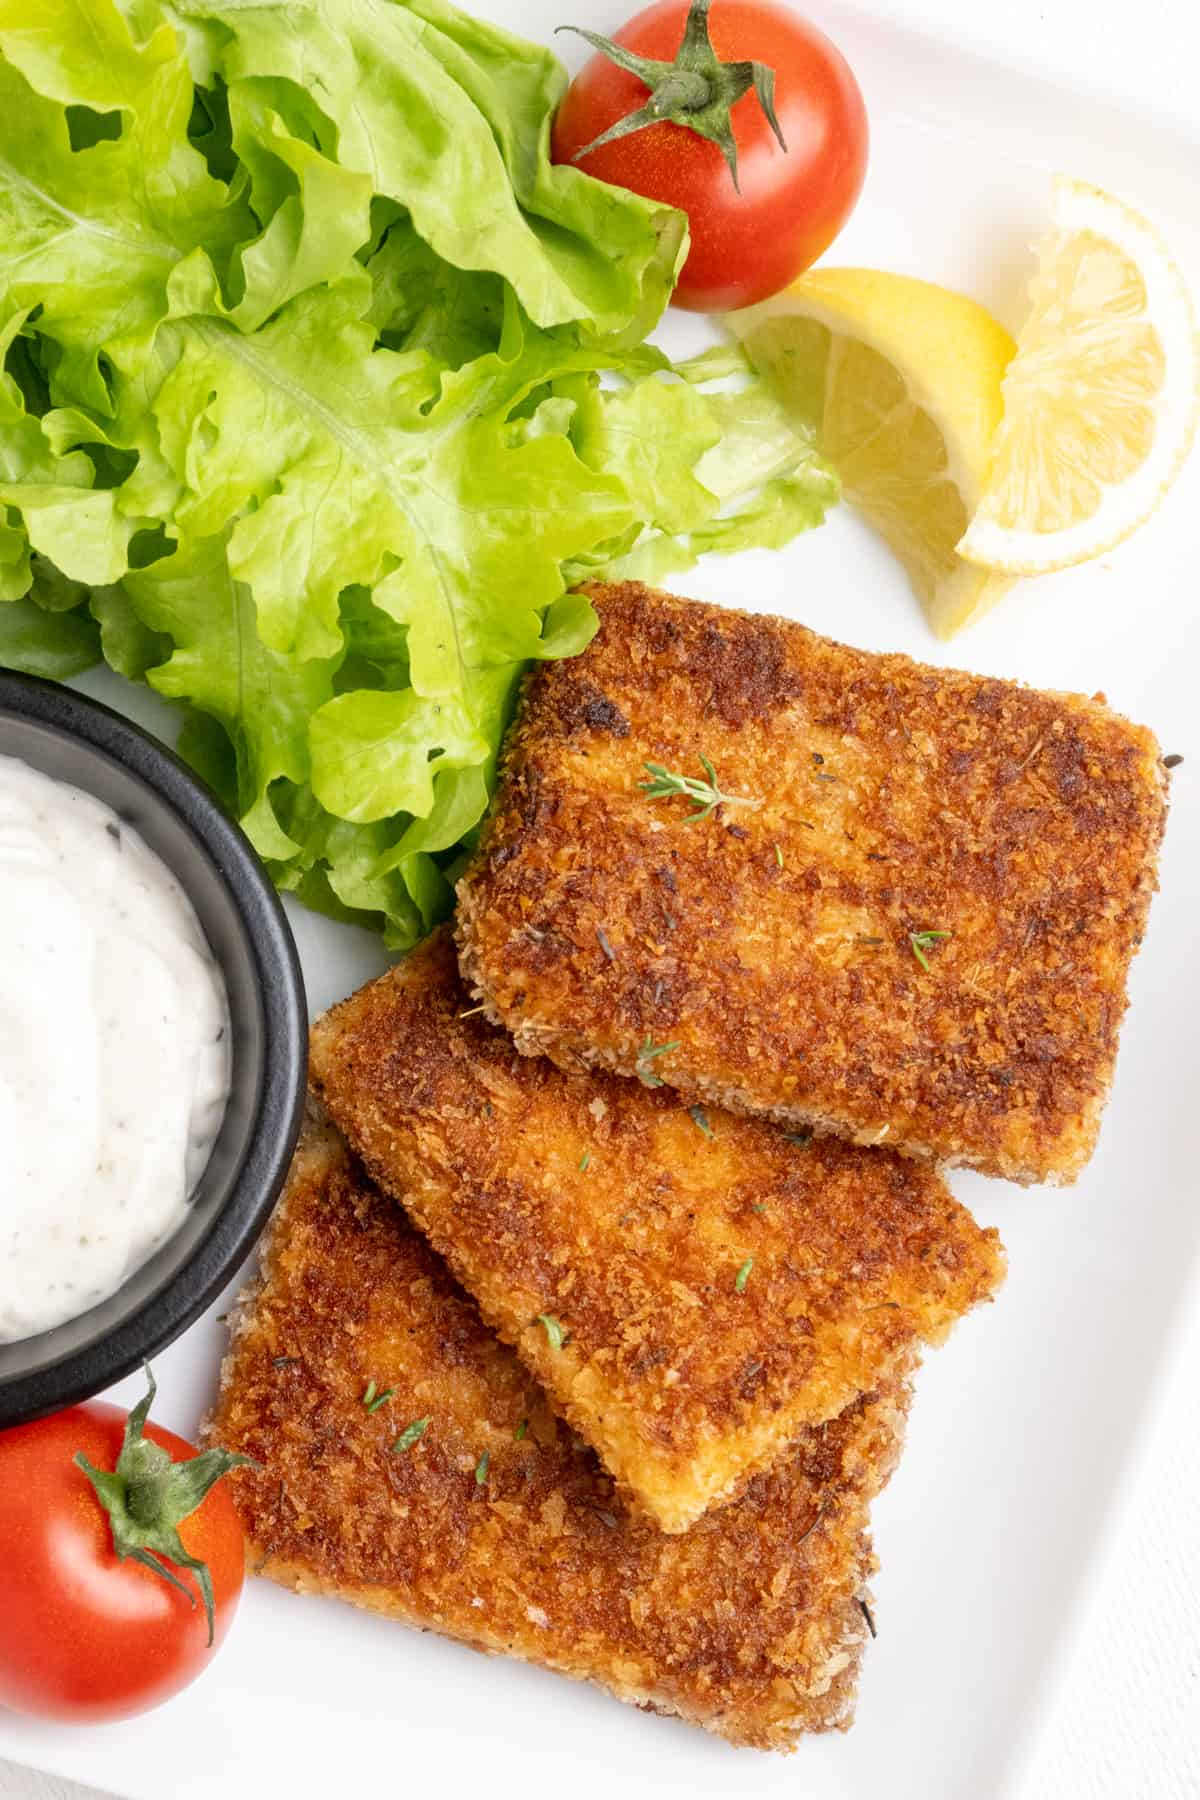 Slices of golden brown breaded tofu served on a white plate with lettuce, tomatoes, wedges of lemon and a white dipping sauce.